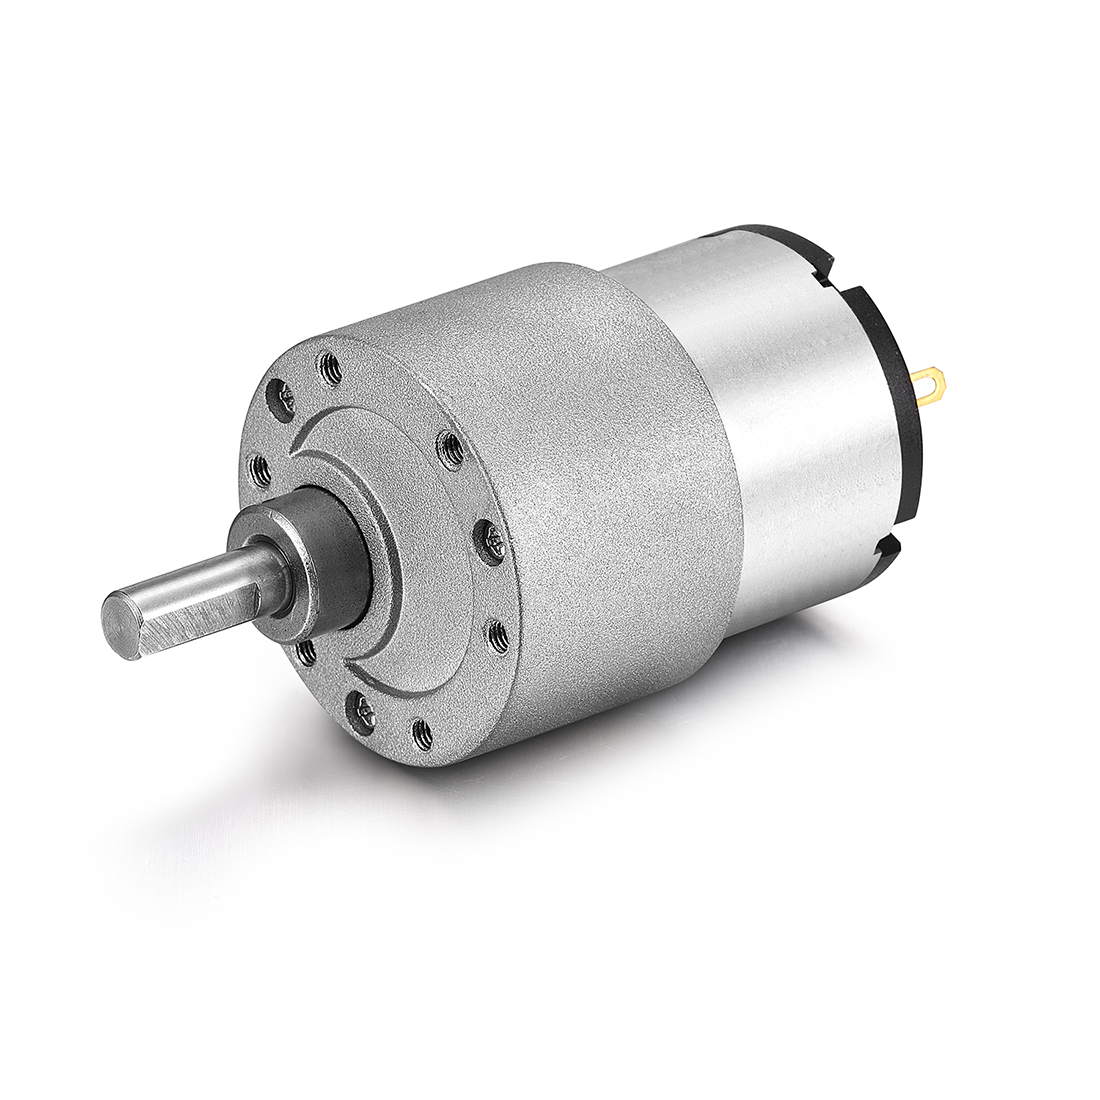 DC 24V 200RPM 6mm Diameter Shaft Electric Geared Box Speed Reduction Motor